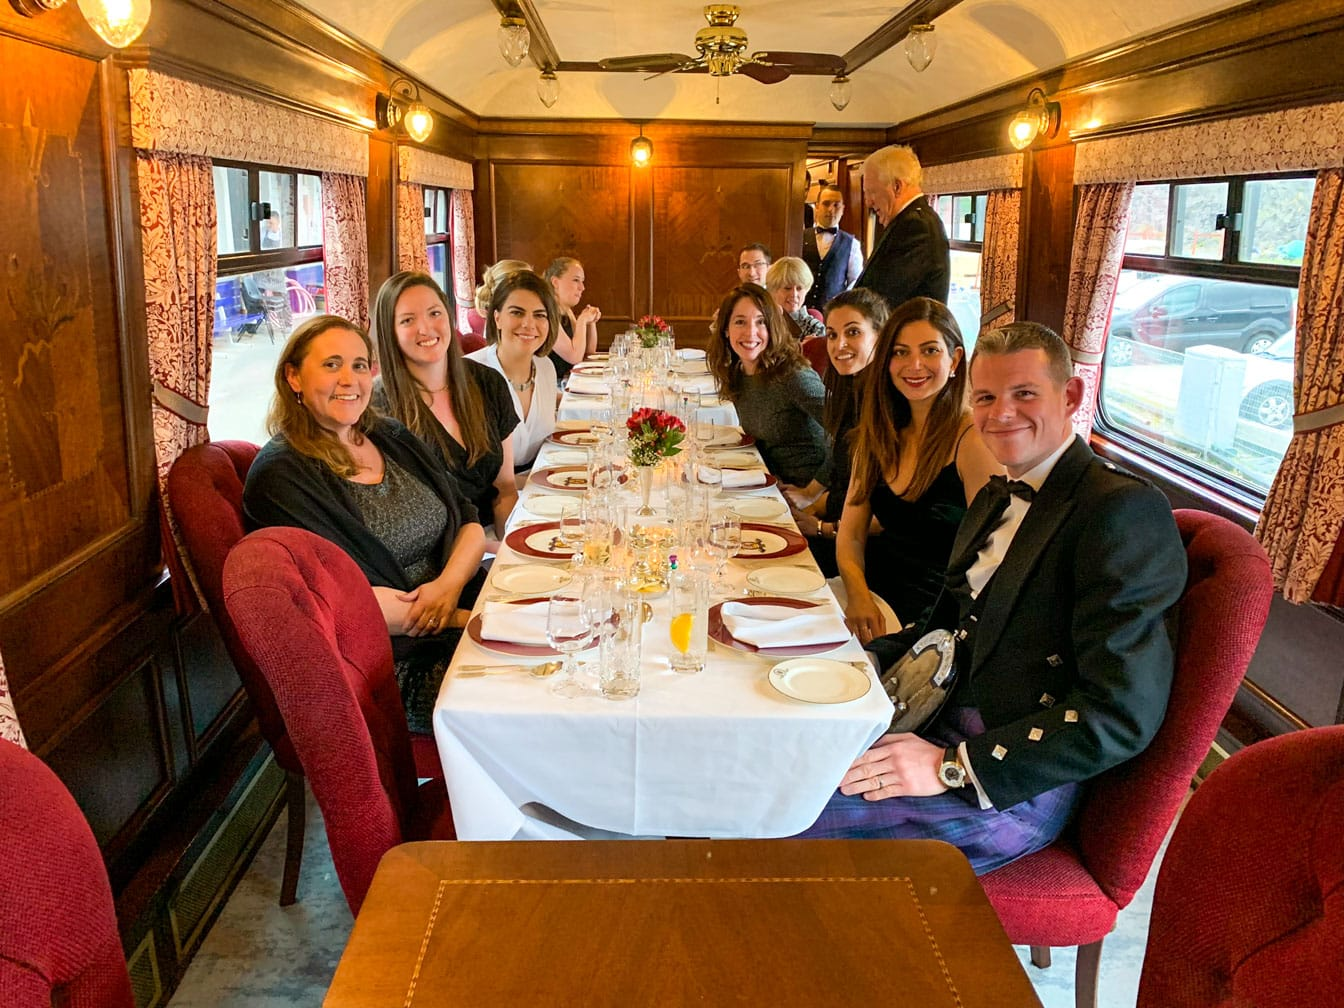 Guests eating dinner on the Belmond Royal Scotsman train